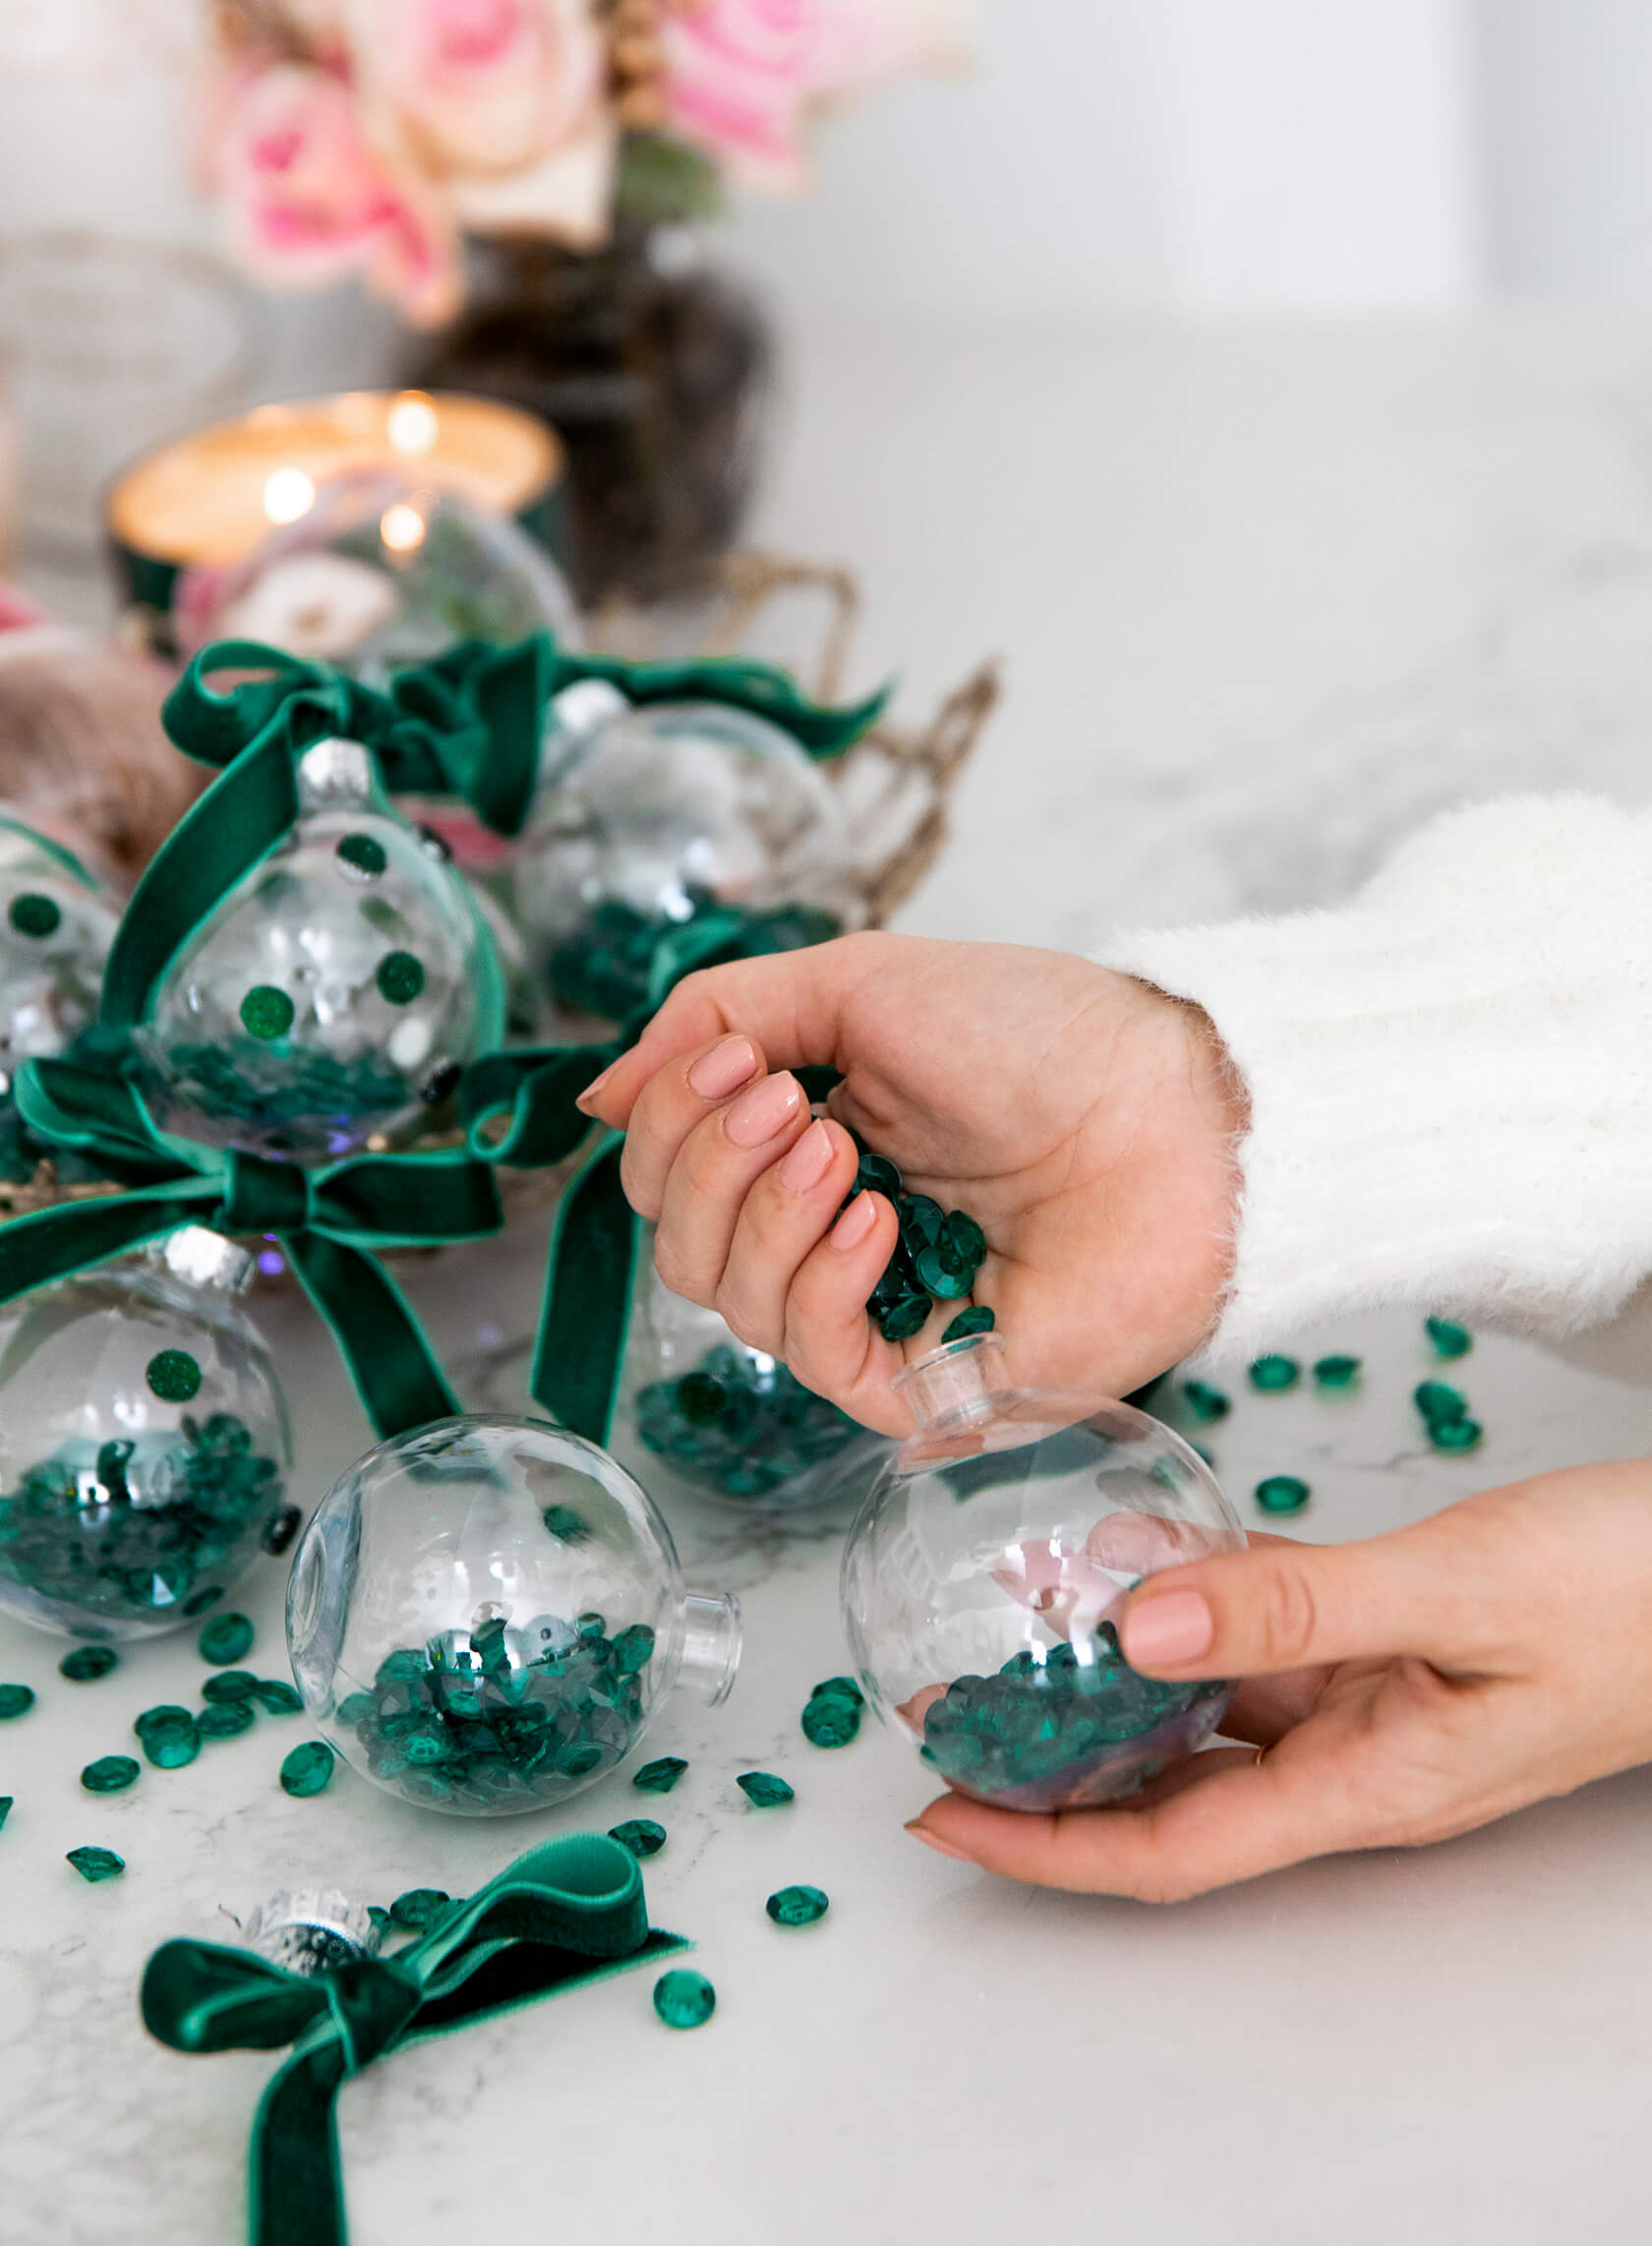 Sydne Style shows easy ornament diy with crystals and velvet ribbon